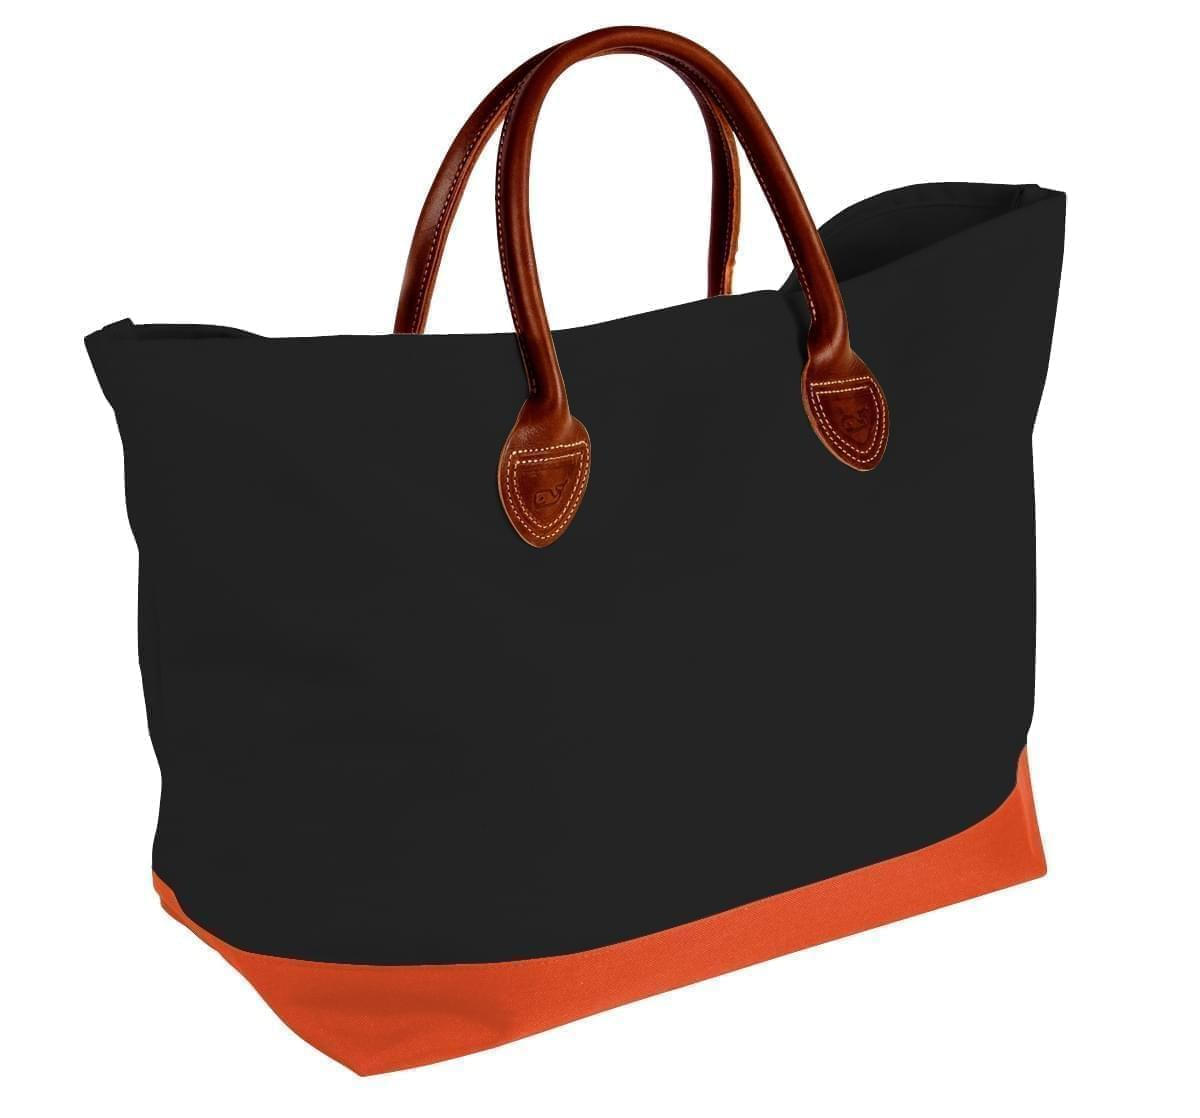 USA Made Canvas Leather Handle Totes, Black-Orange, 10899-JH9